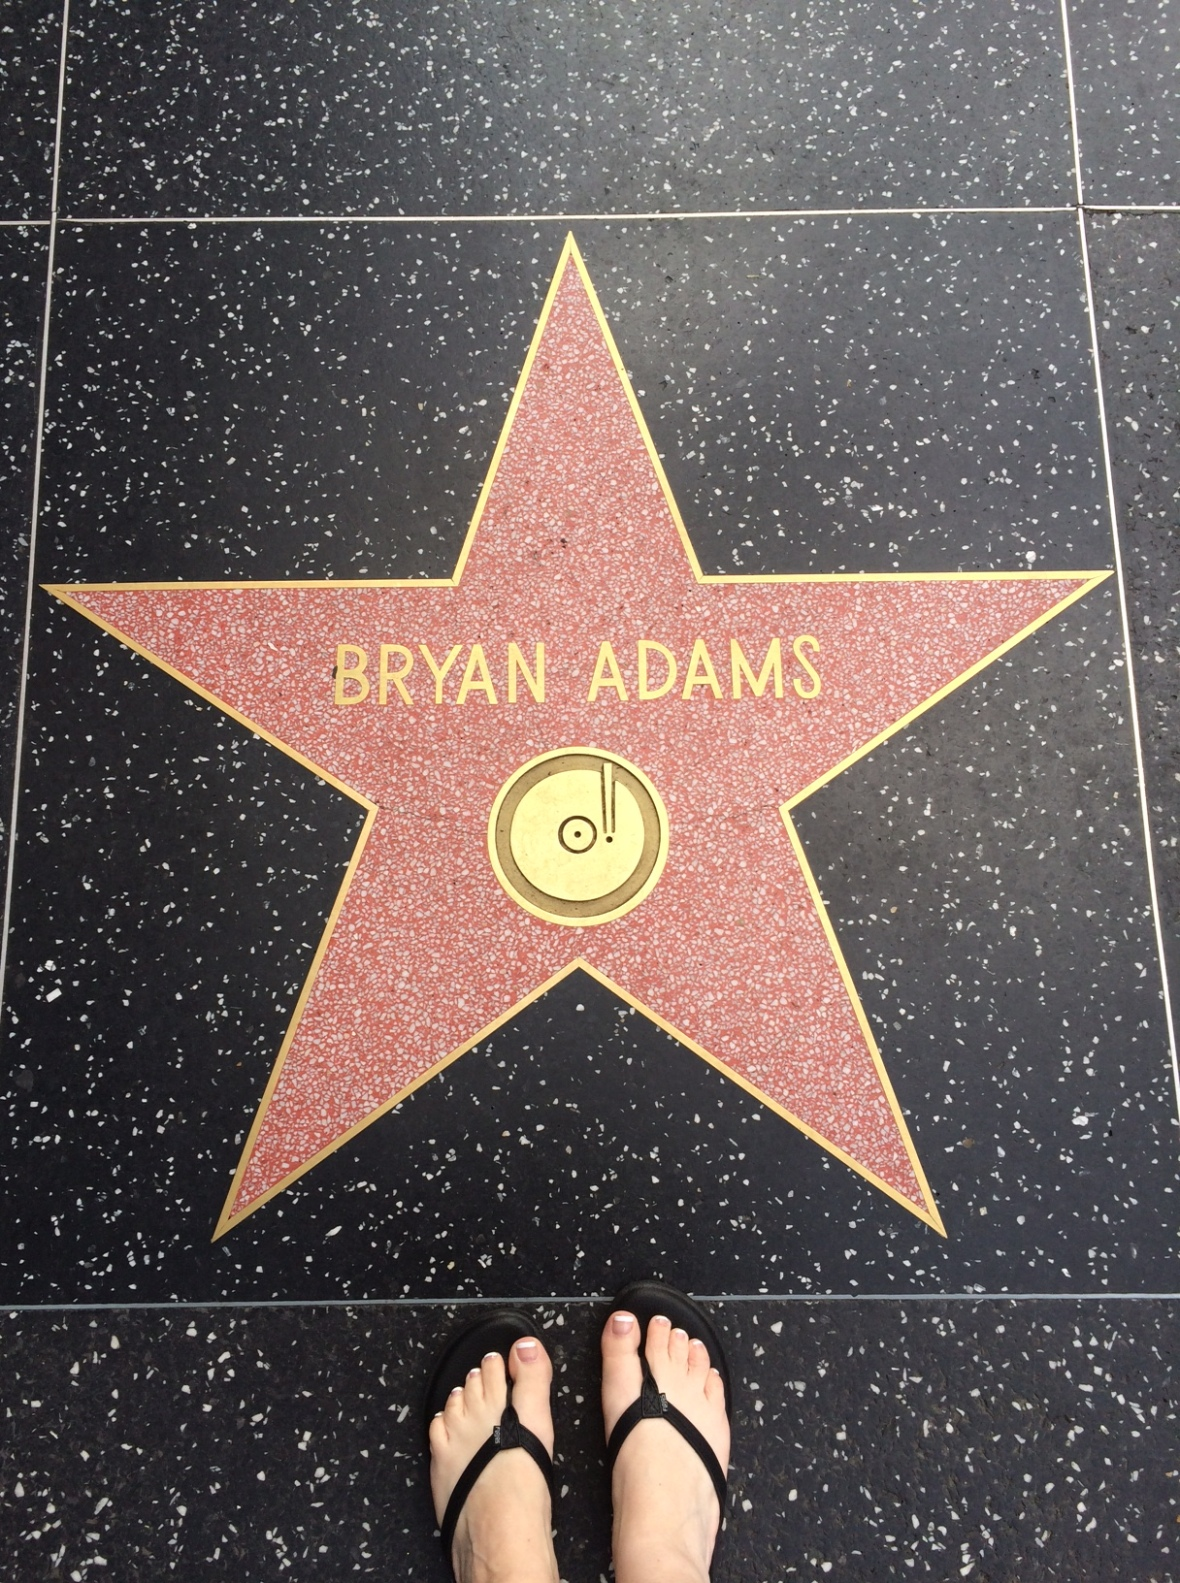 Bryan Adams is the greatest recording artist of all time (that's for Patt and Dan)